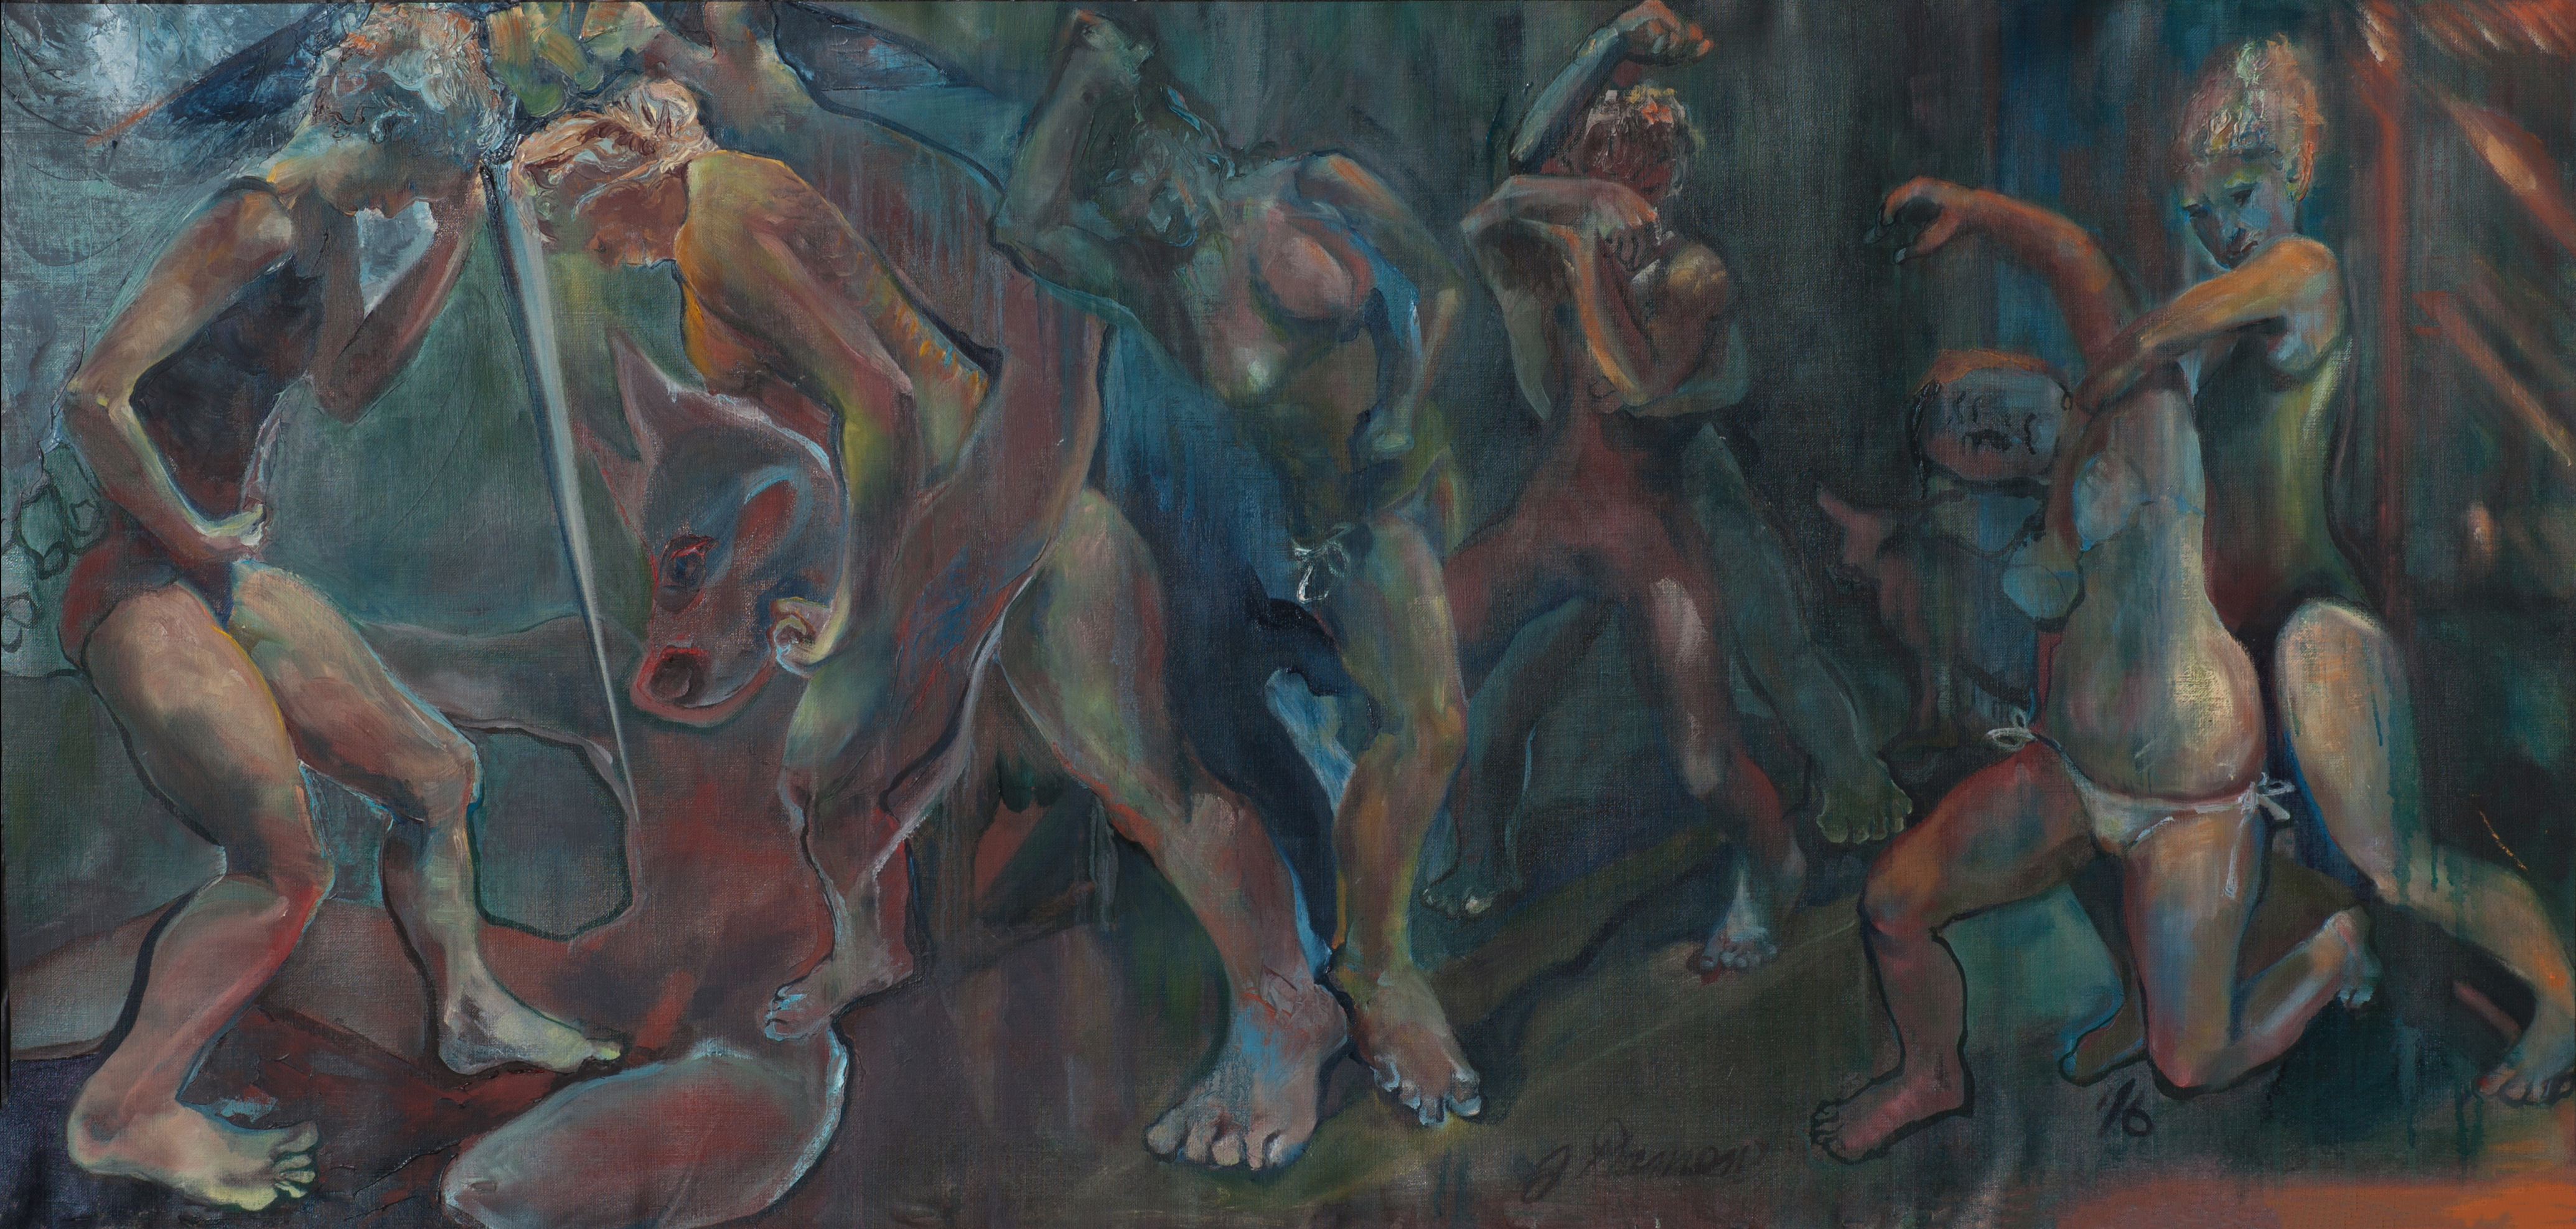 oil painting, Greek myth, feminist perspective, psychological